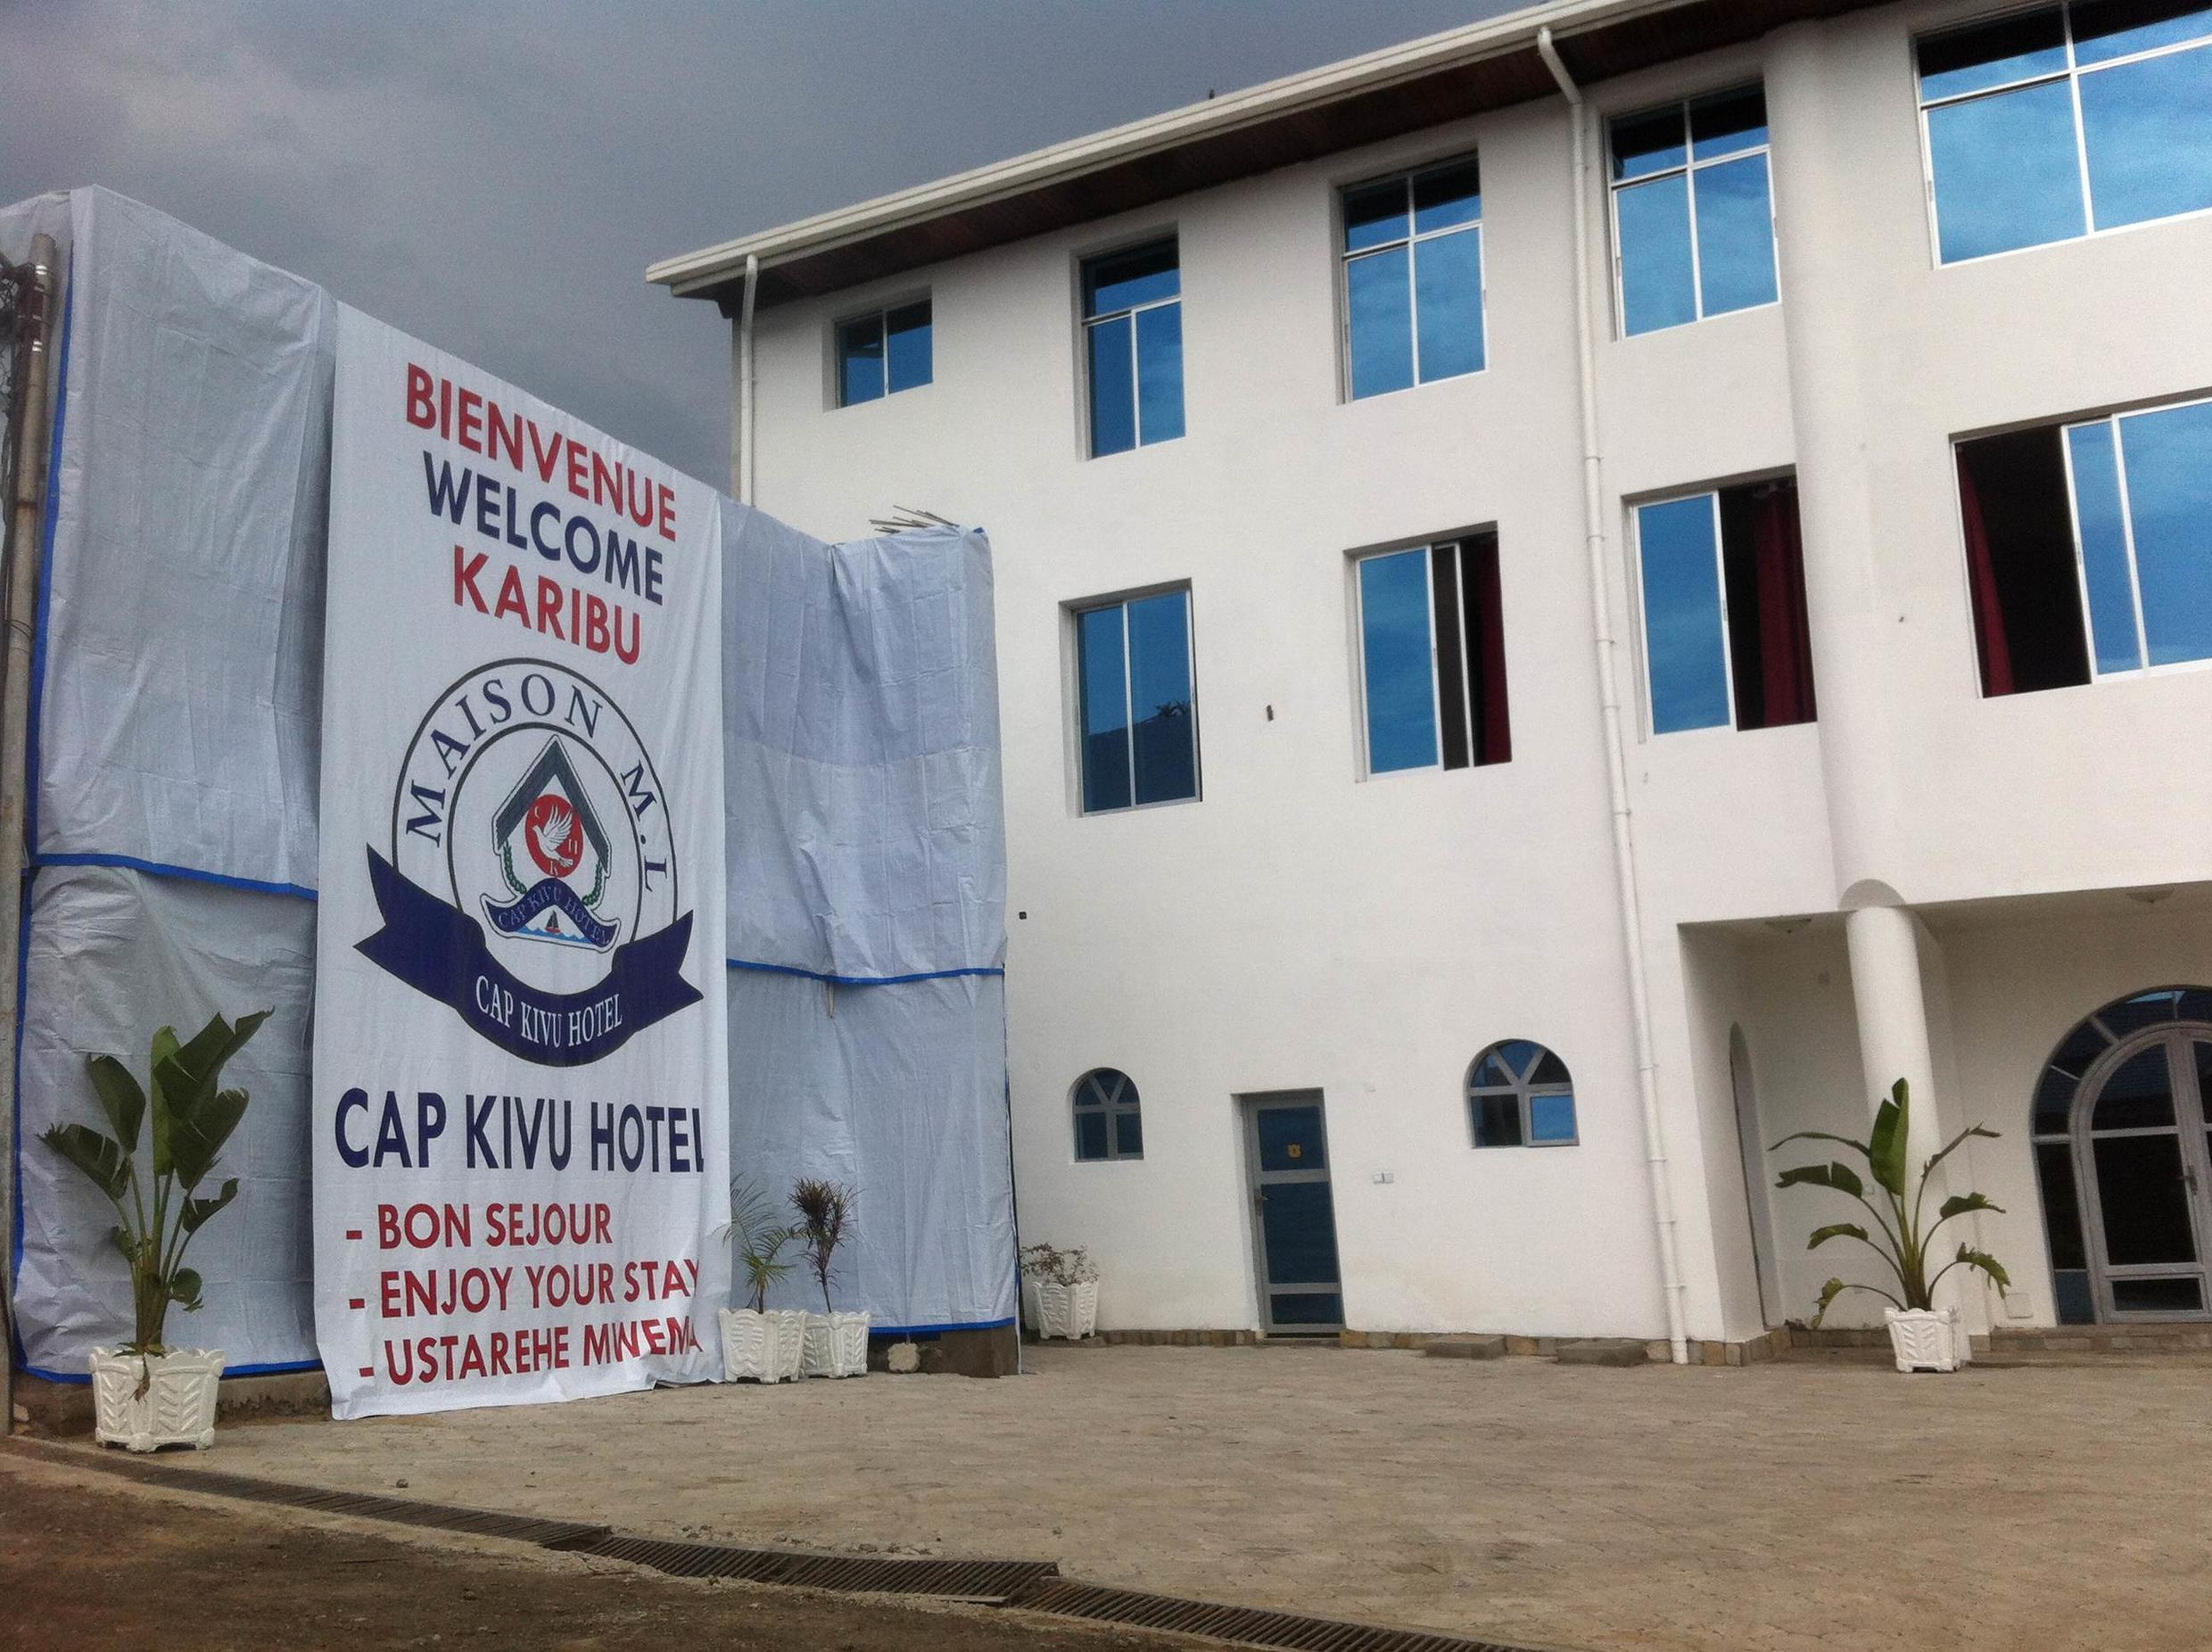 Authorities pressured the owner of the Cap Kivu Hotel to finish renovations in time for the mining conference. Charly Kasereka/Goma